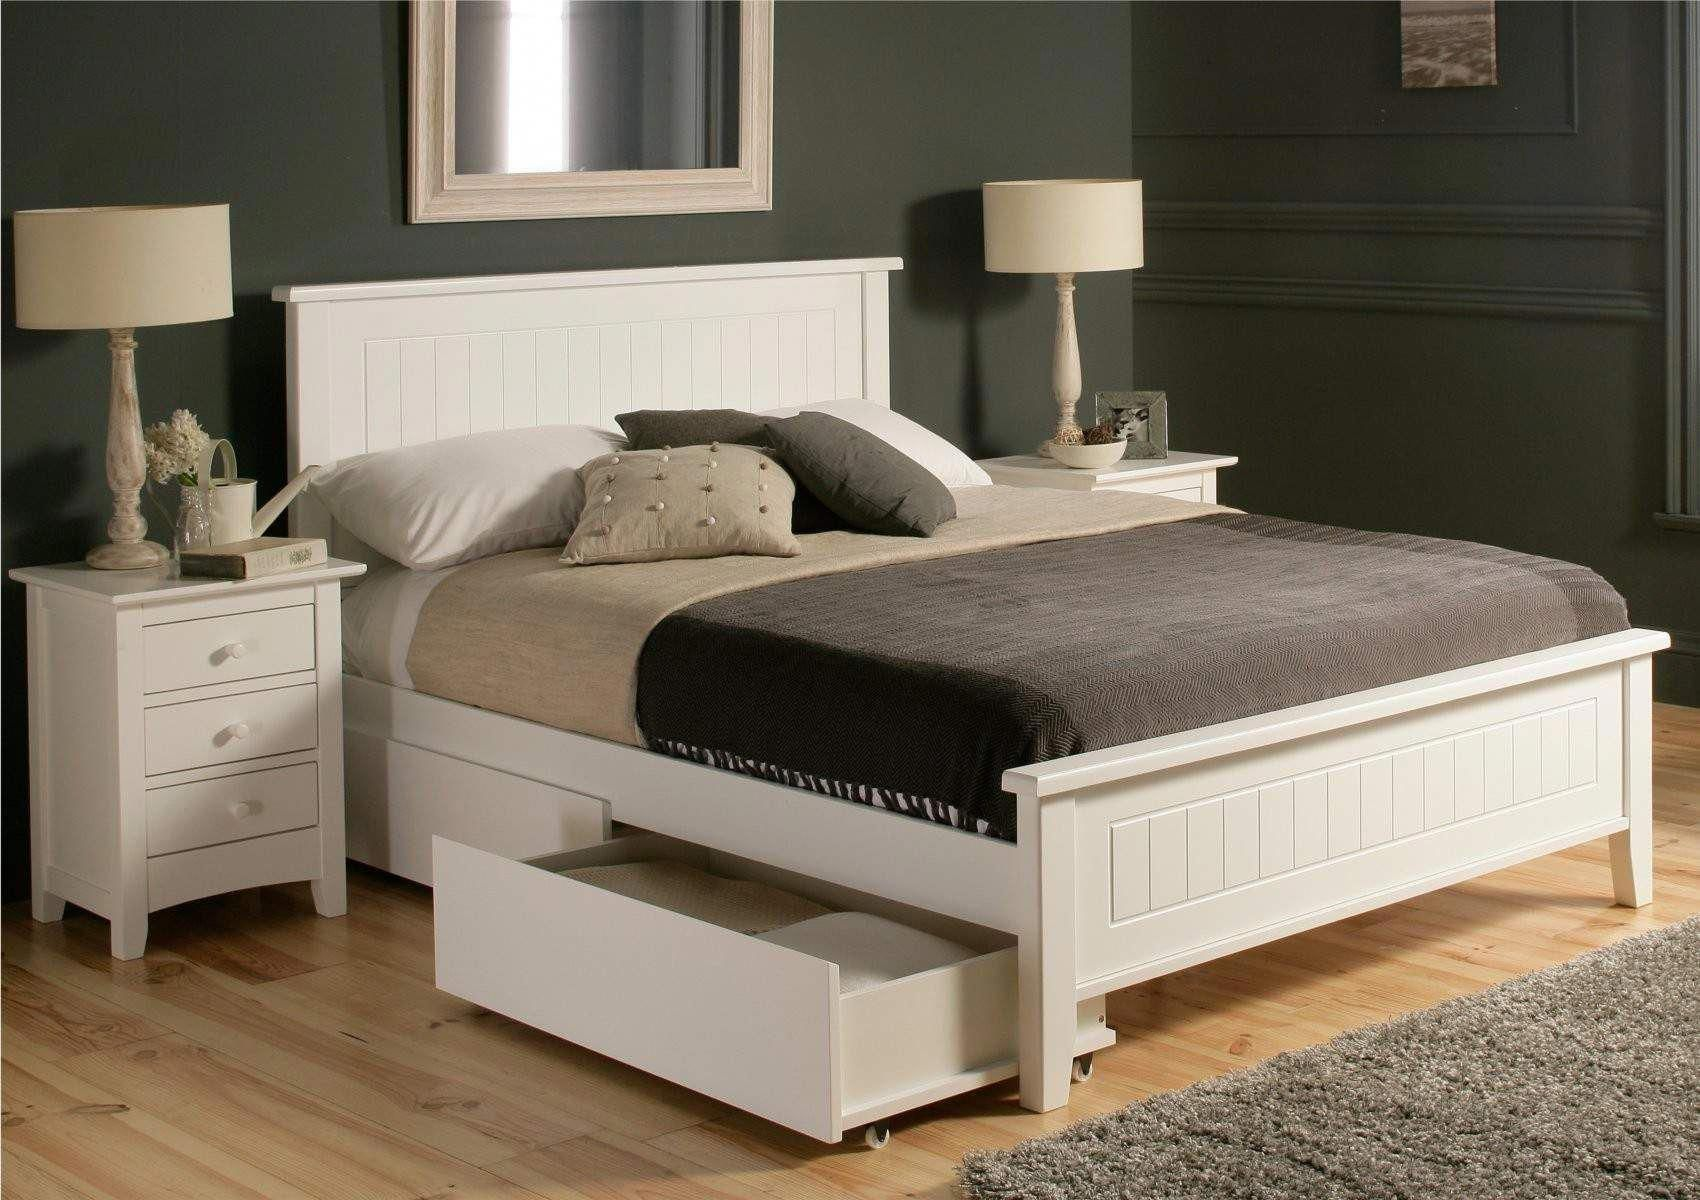 Wooden White Bed With Drawers Underneath And Small Cabinet With